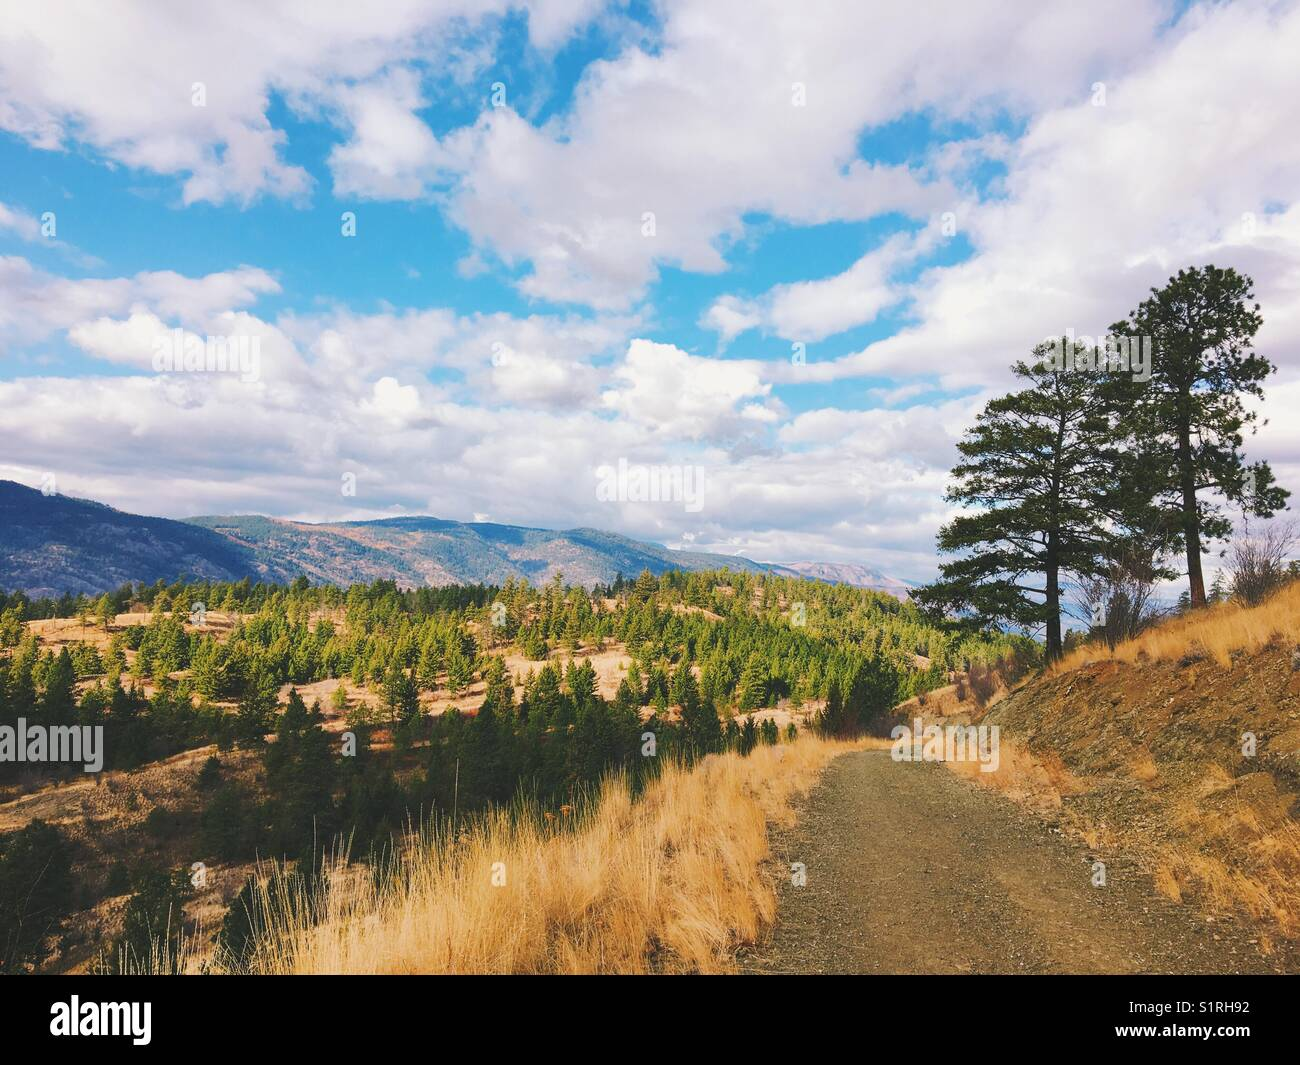 Autumn landscape under a cheerful blue sky with white clouds. An empty trail with trees on the side and hills in - Stock Image